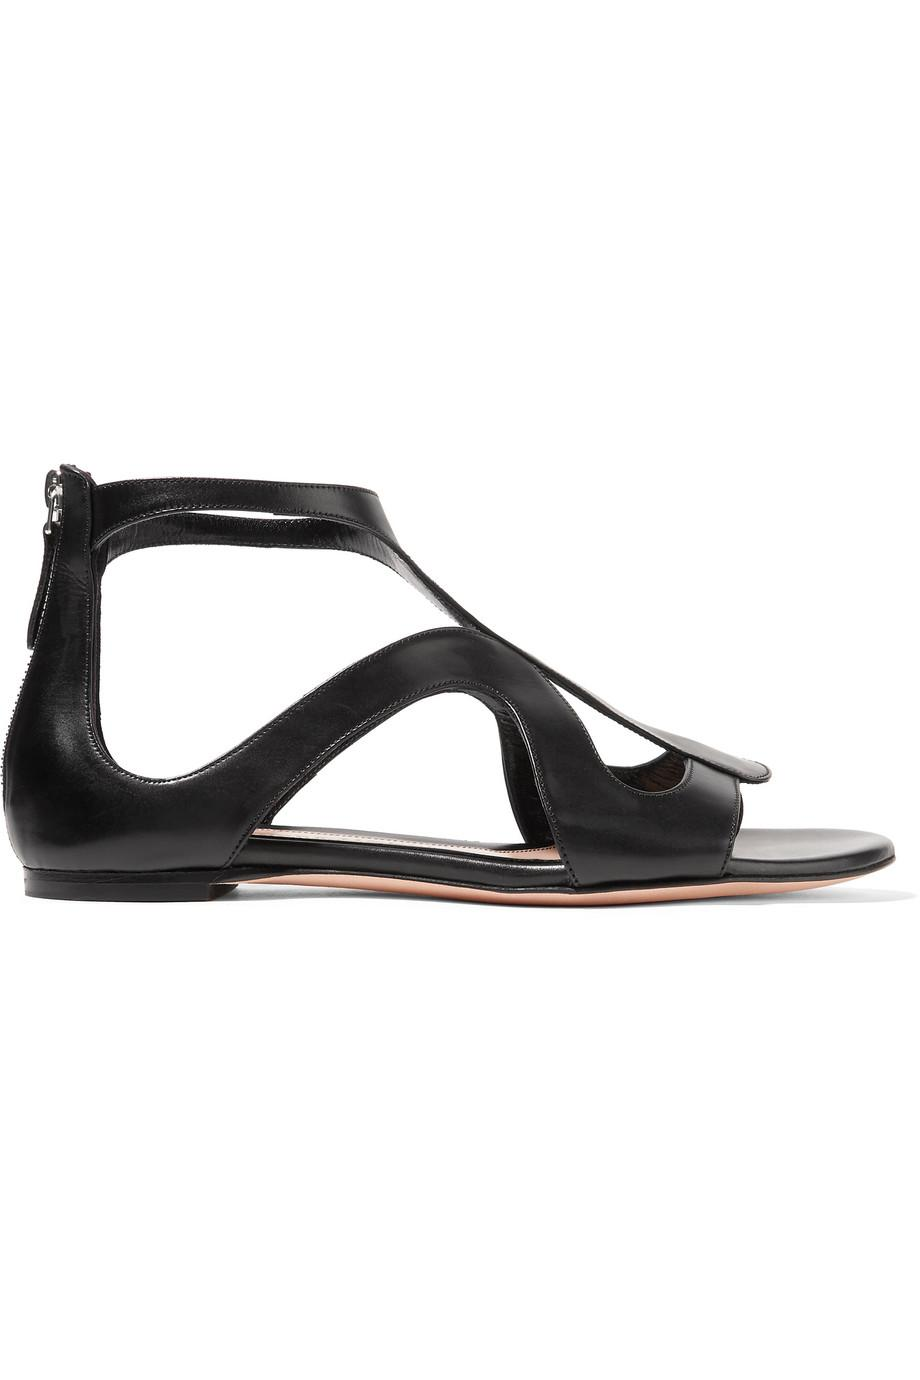 many kinds of clearance wiki Alexander McQueen Leather Cutout Sandals outlet footlocker d0lMXQ